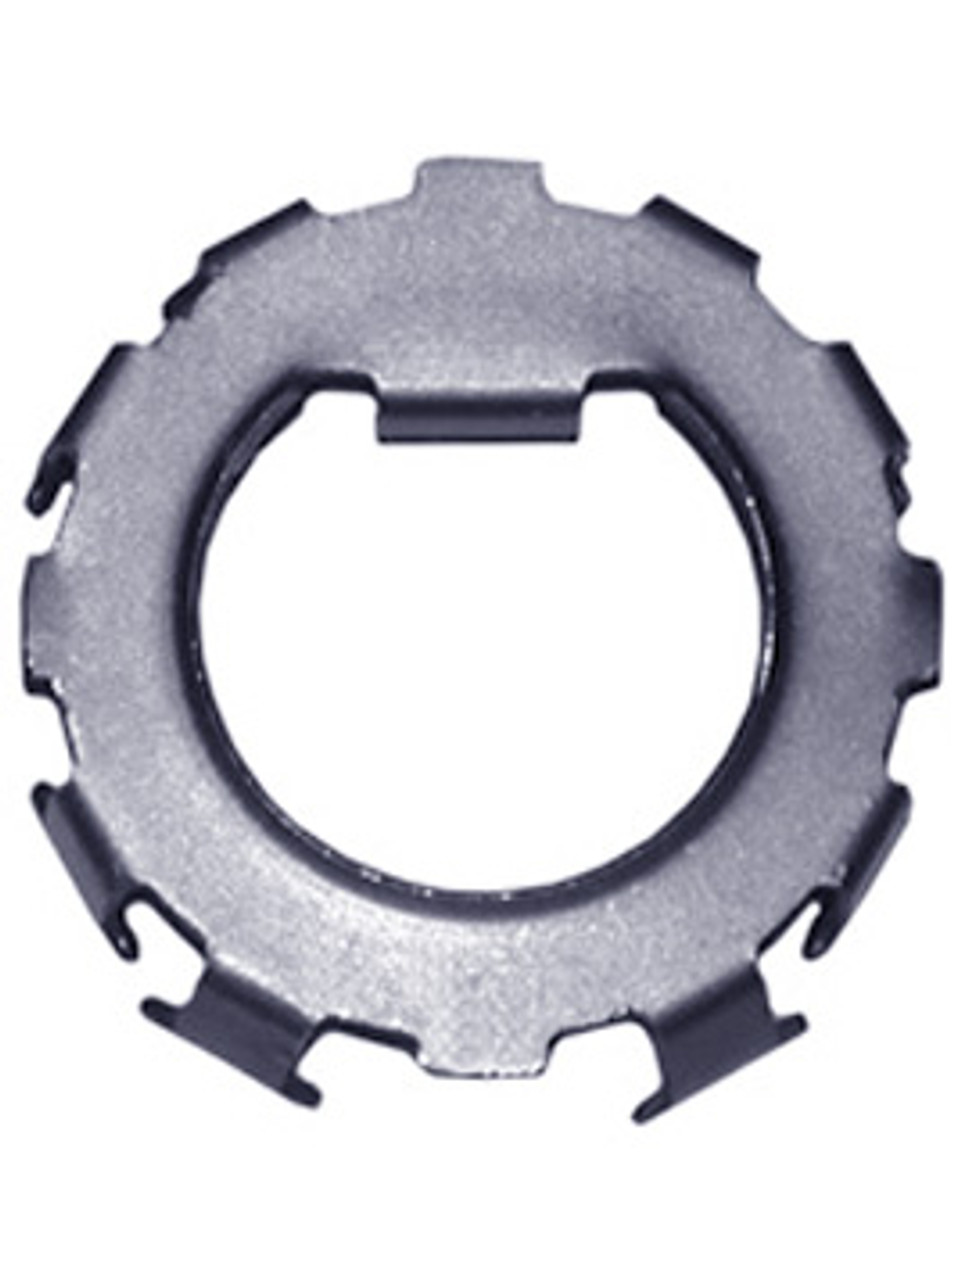 6-190 --- EZ Lube Washer (After 2002)